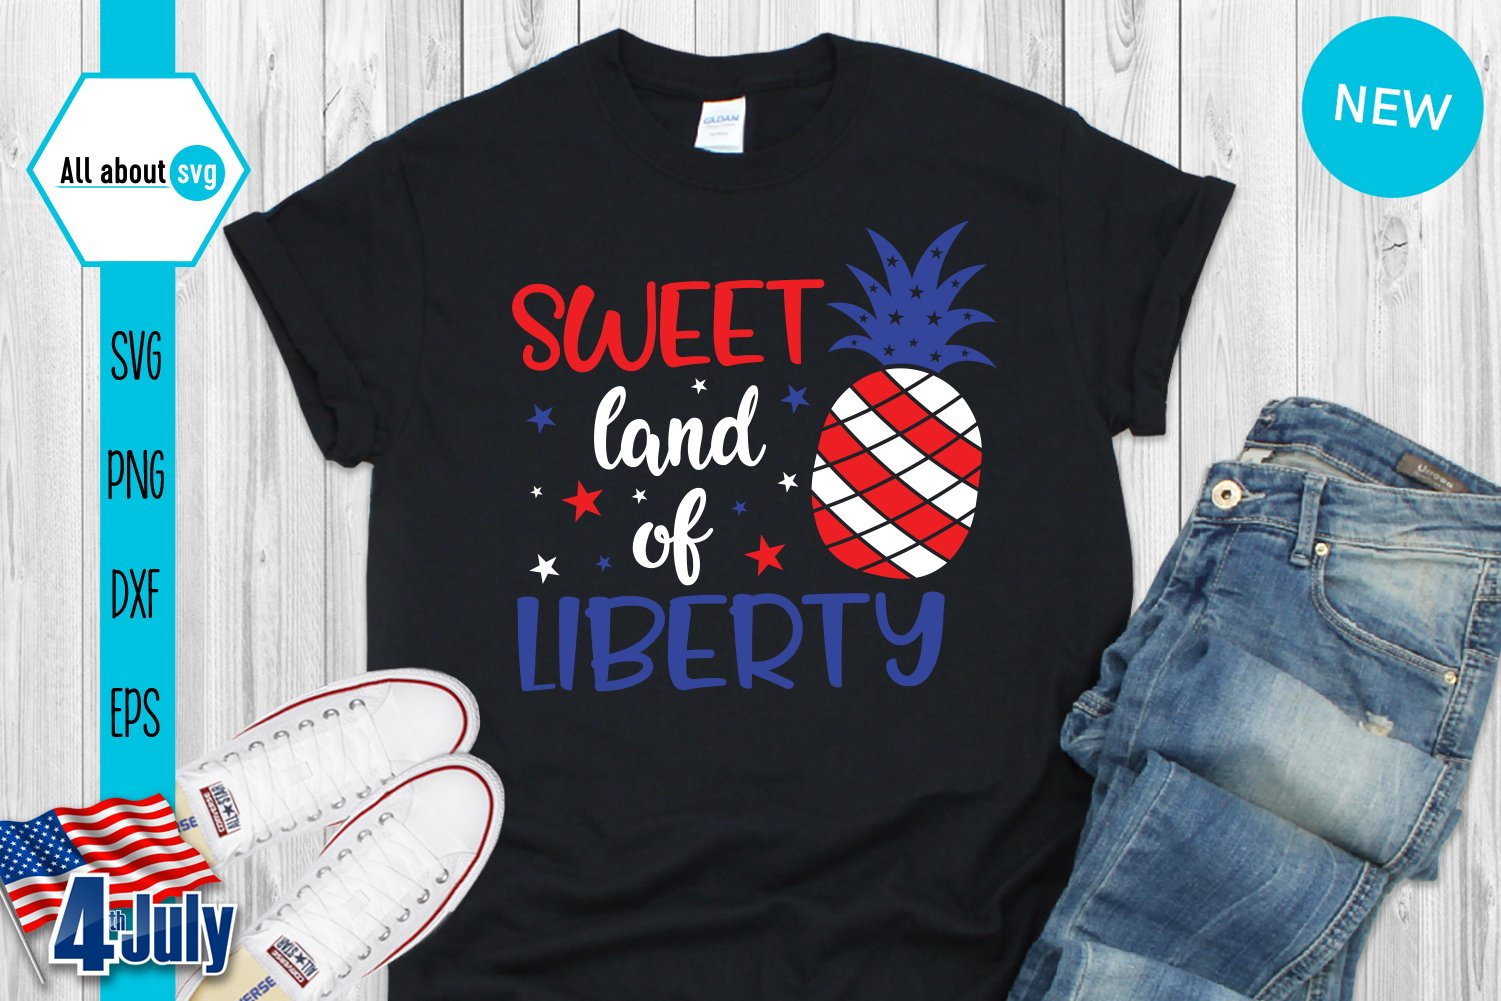 View 4Th Of July Svg Cut File: Sweet Land Of Liberty Design